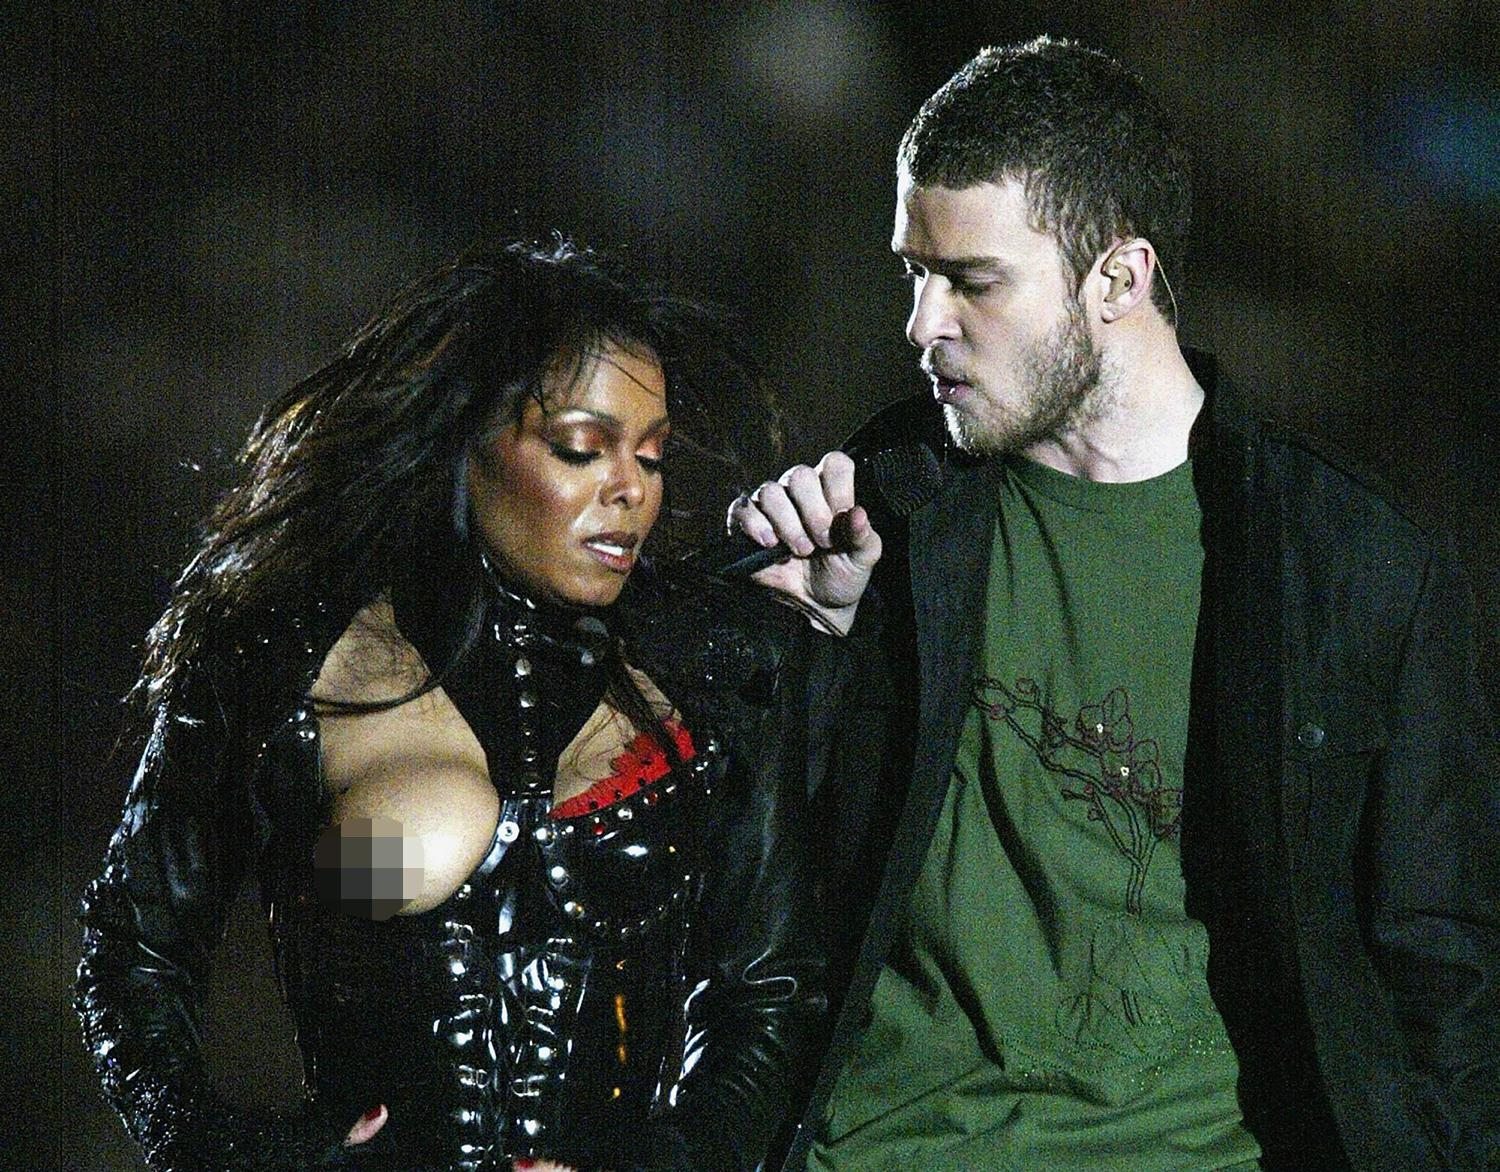 Janet Jackson suffered an embarrassing wardrobe malfunction during her half-time show performance